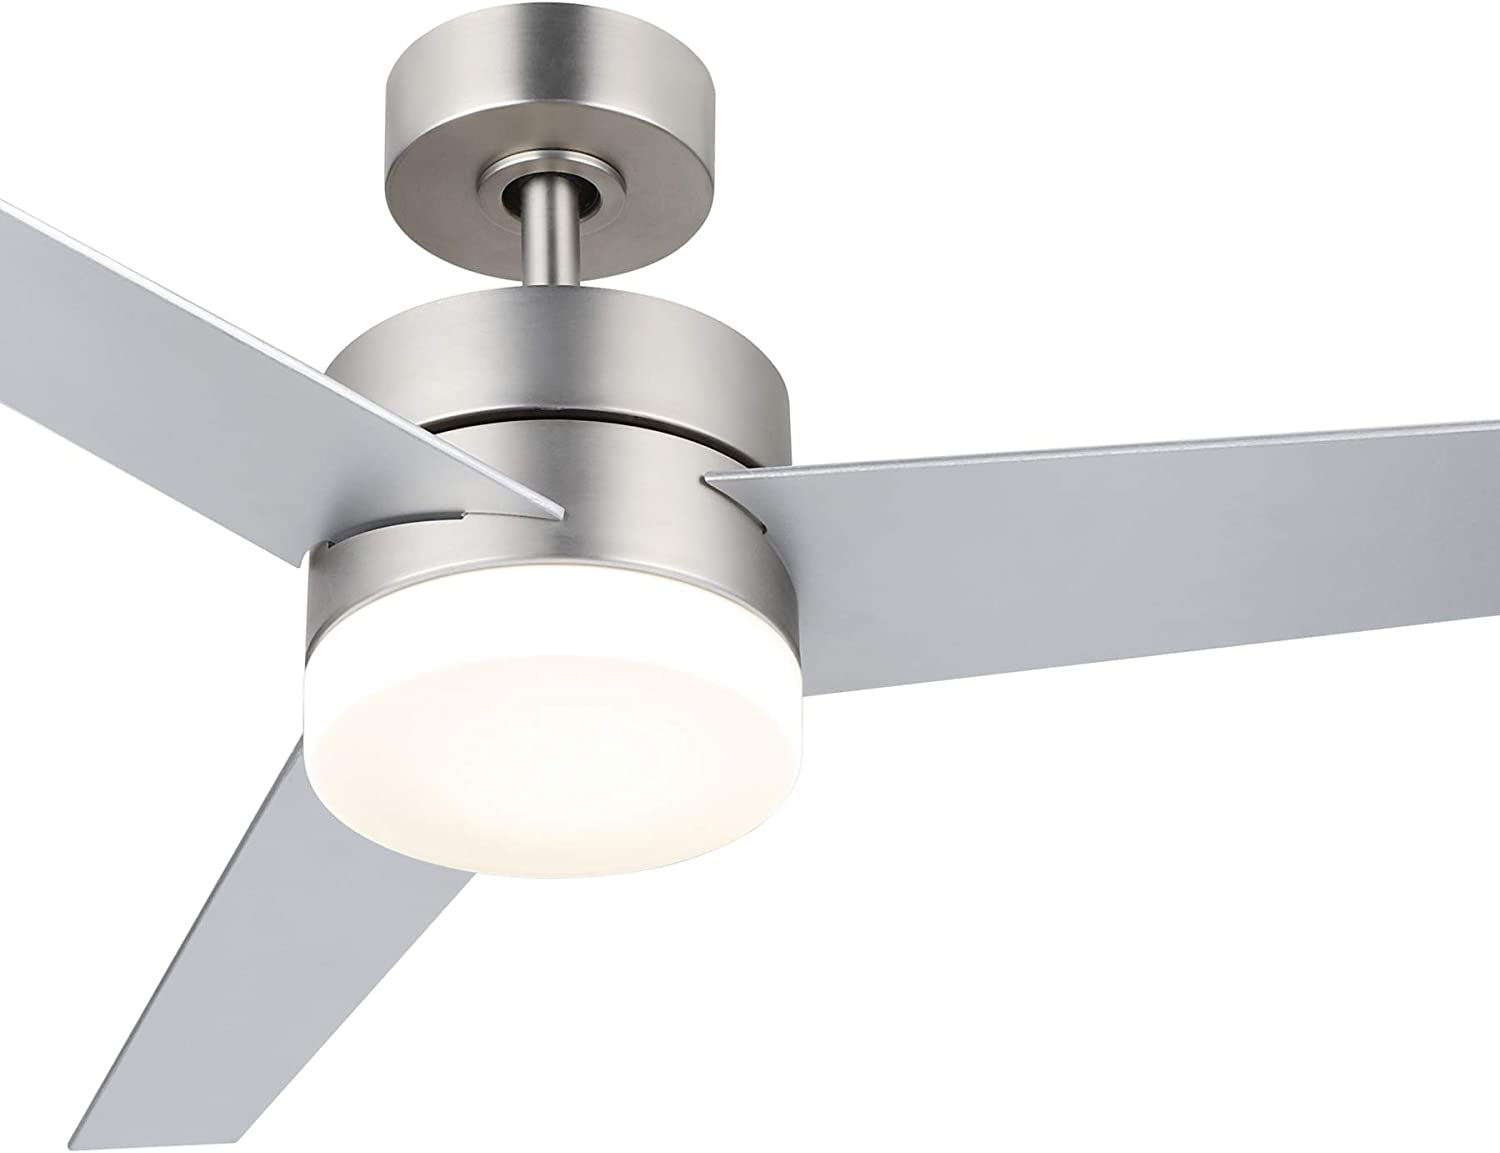 Amazon Com Co Z 52 Modern Ceiling Fan With Lights And Remote Contemporary Ceiling Fans Brushed Nickel Indoor Led Ceiling Fan For Kitchen Bedroom Living Room 3 Reversible Blades In Silver And Walnut Finish